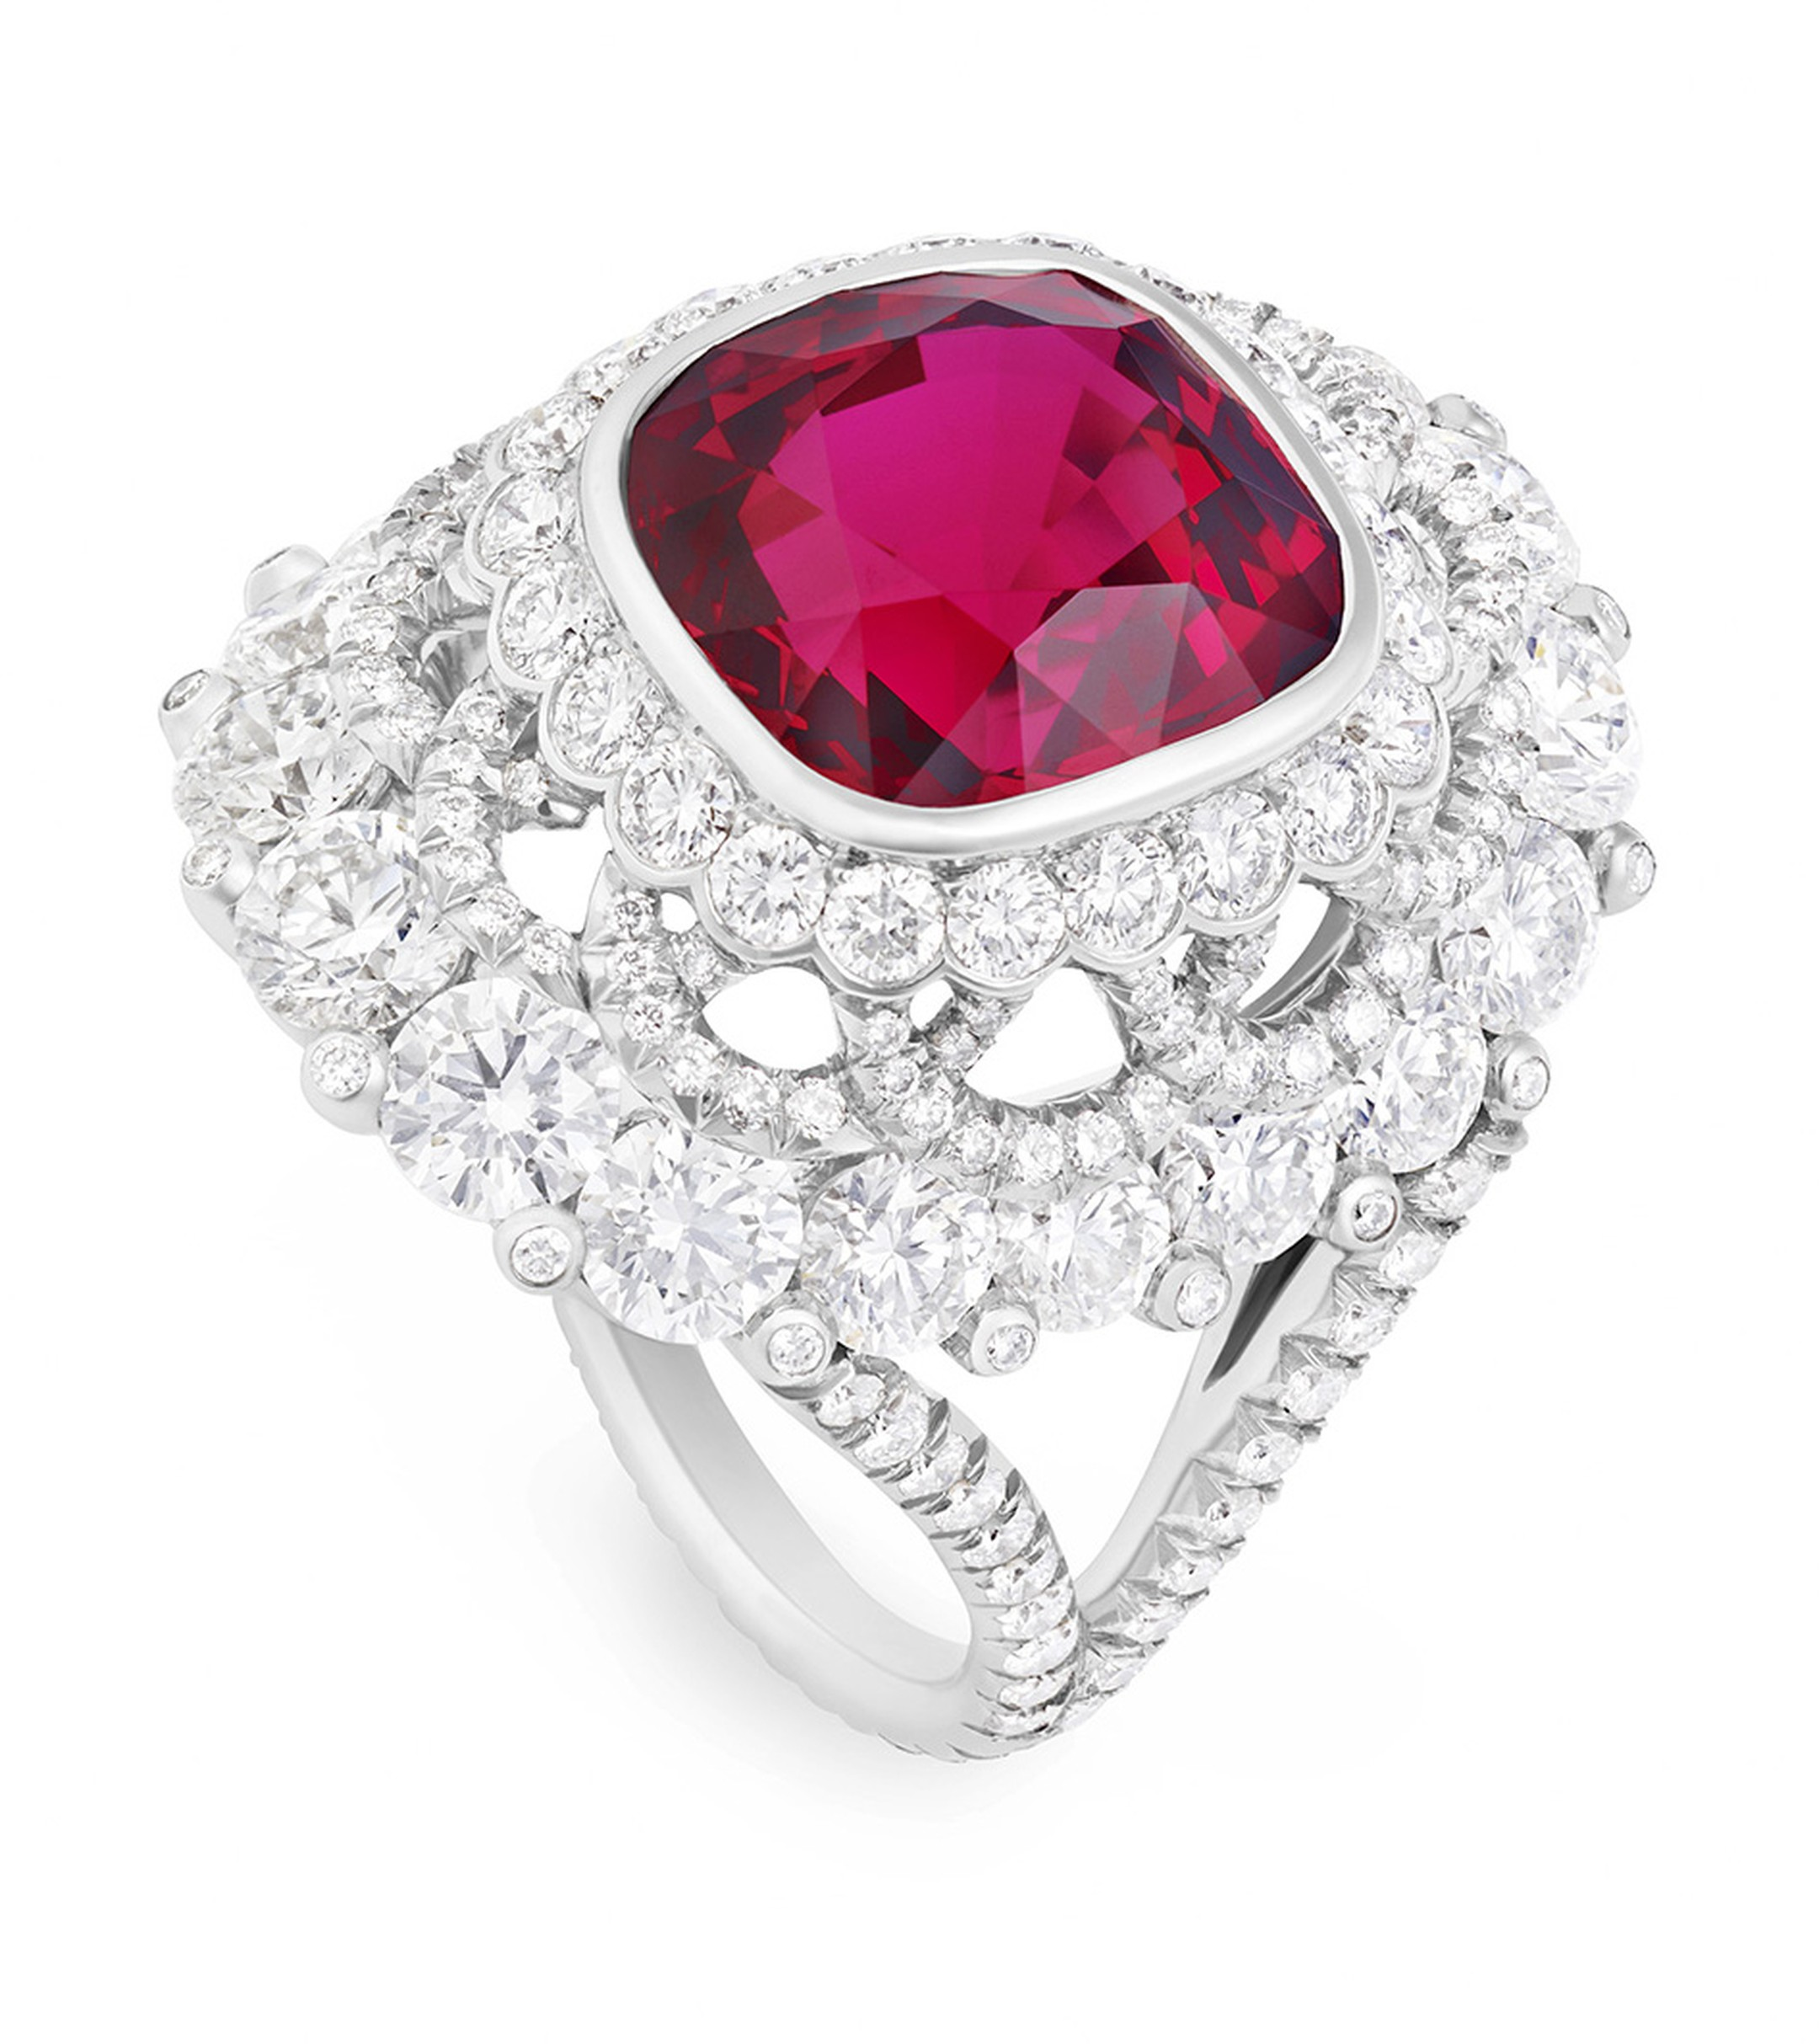 Faberge-Spinel-Ring.jpg